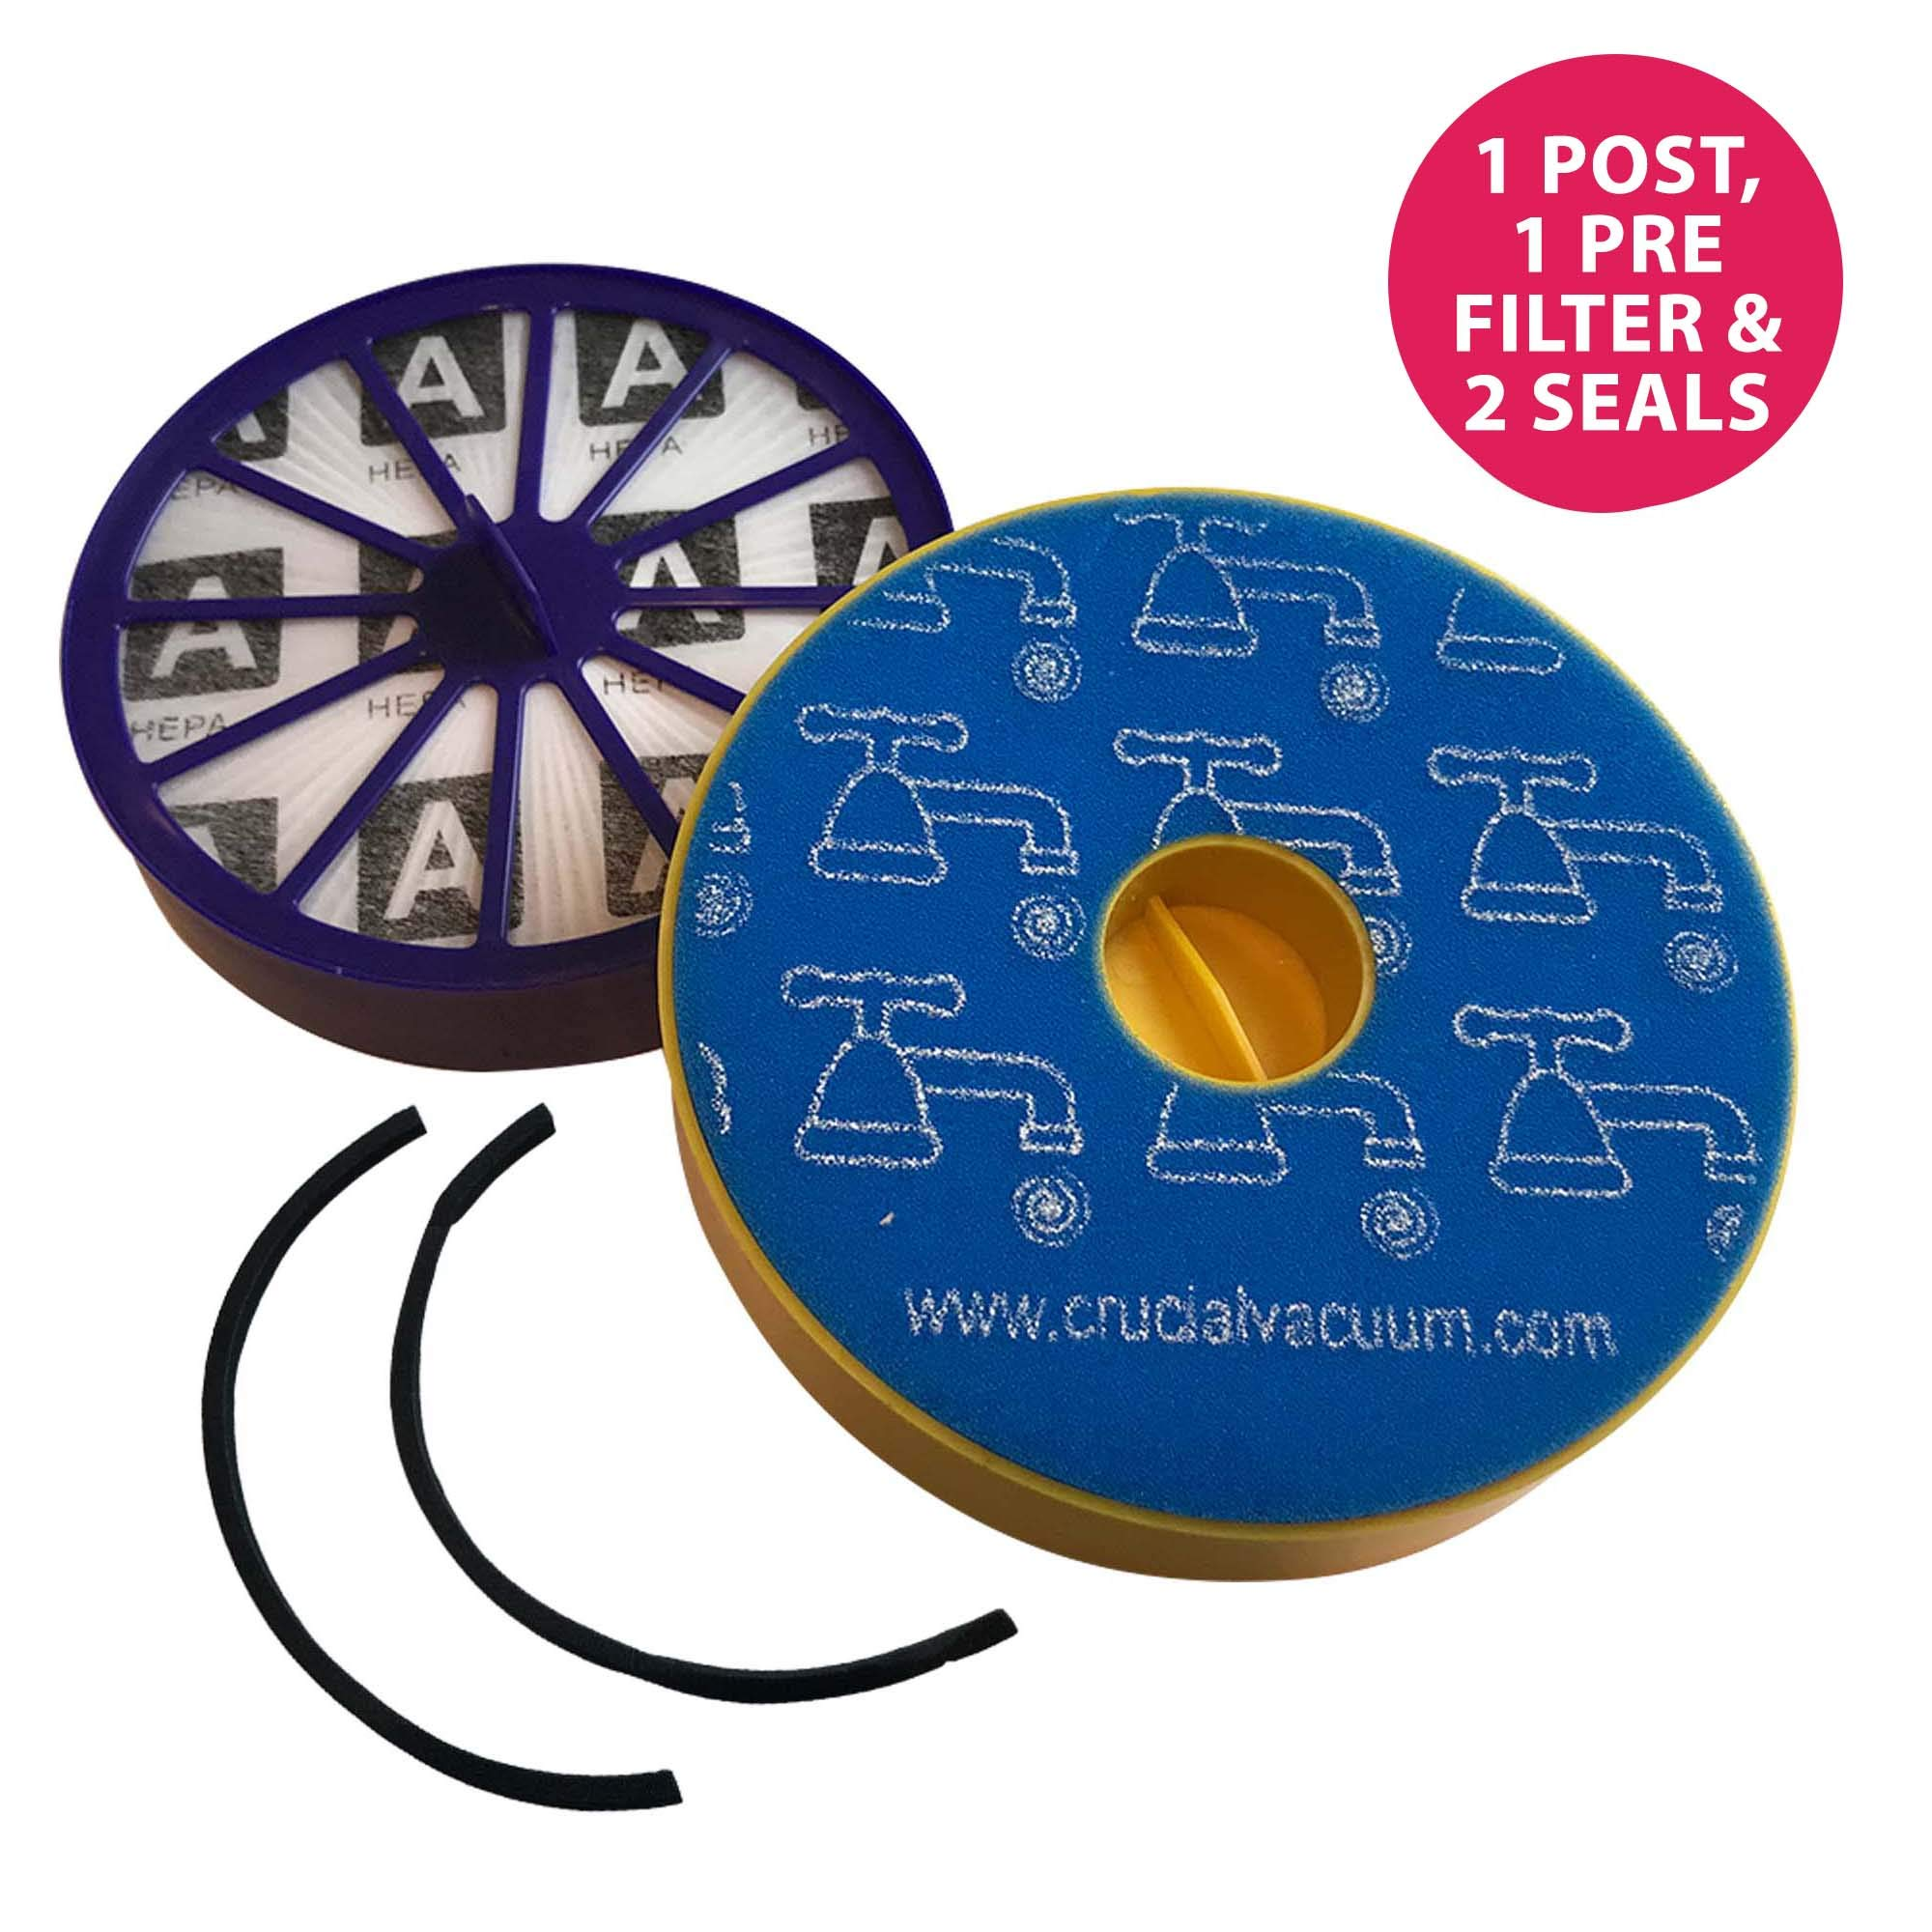 Think Crucial Replacement for Dyson DC14 DC-14 Filter & Seal Kit, Compatible With Part # 90142-02, 921623-01, 901420-01, 904979-02 & 905401-01